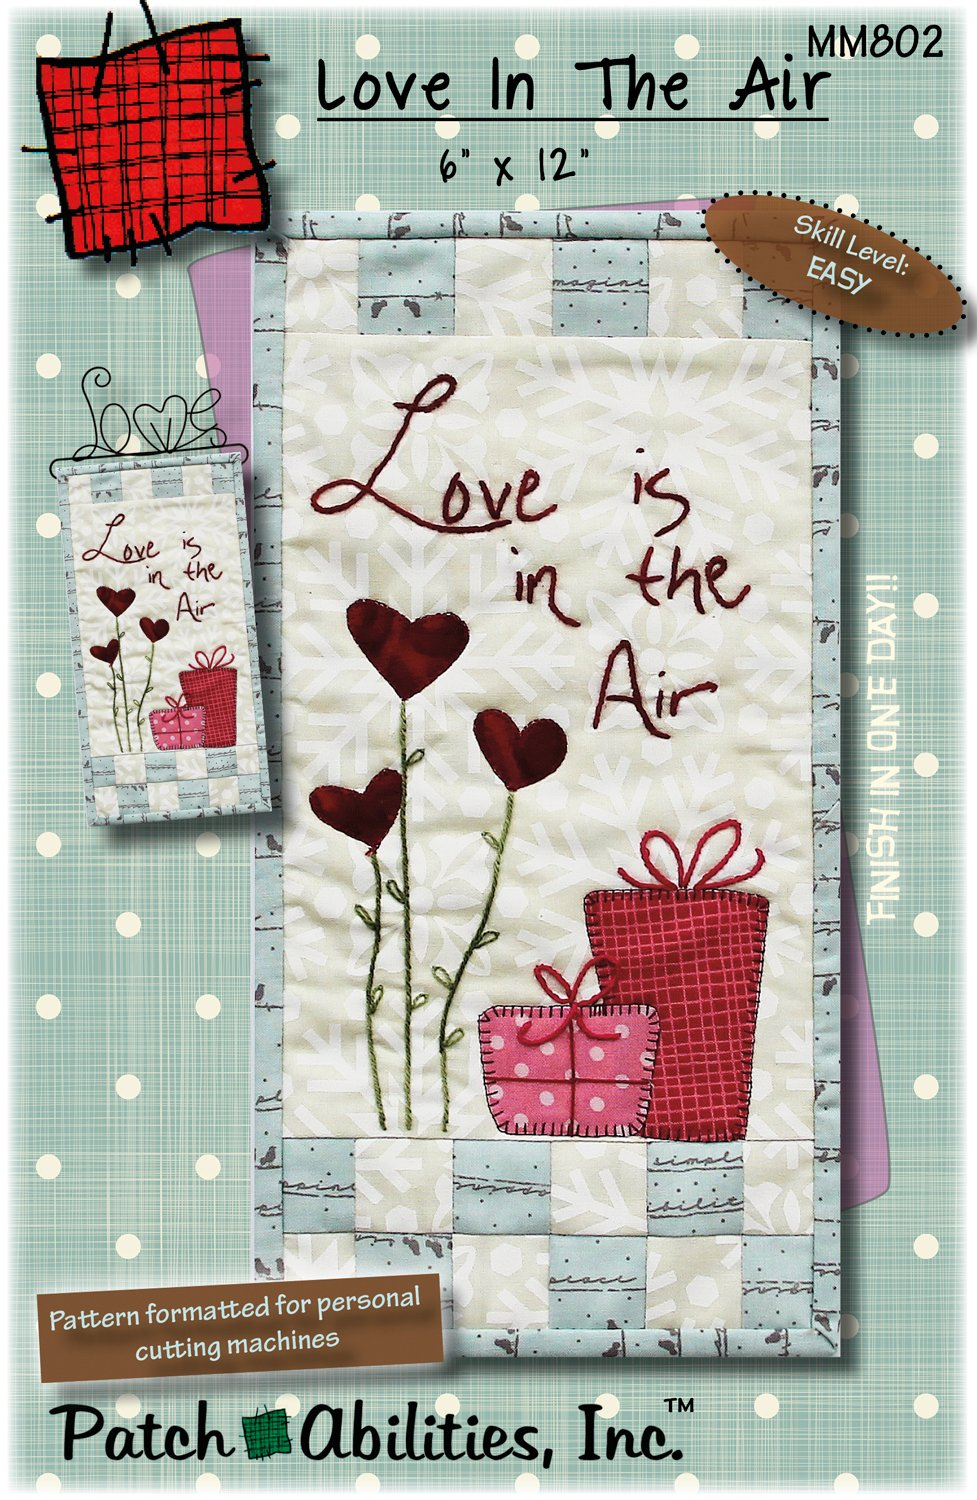 MM802 Love in the Air - DIGITAL DOWNLOAD PATTERN